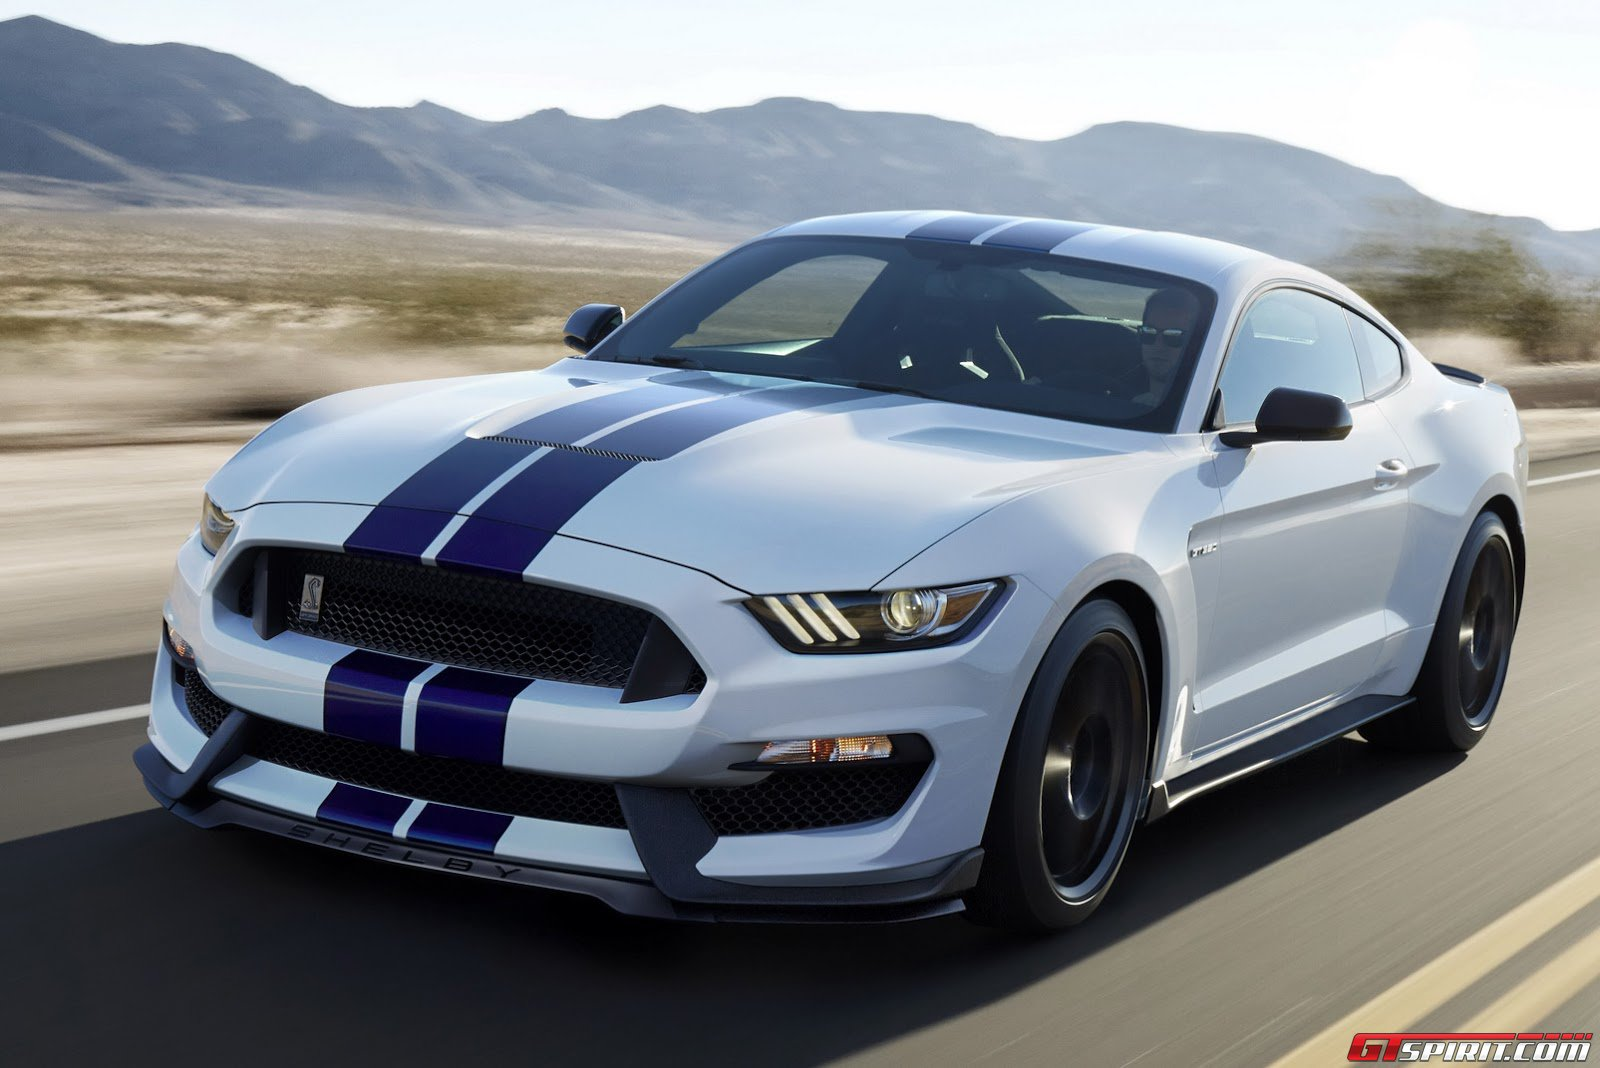 Ford Mustang Shelby GT350 Weight Figures Revealed - GTspirit